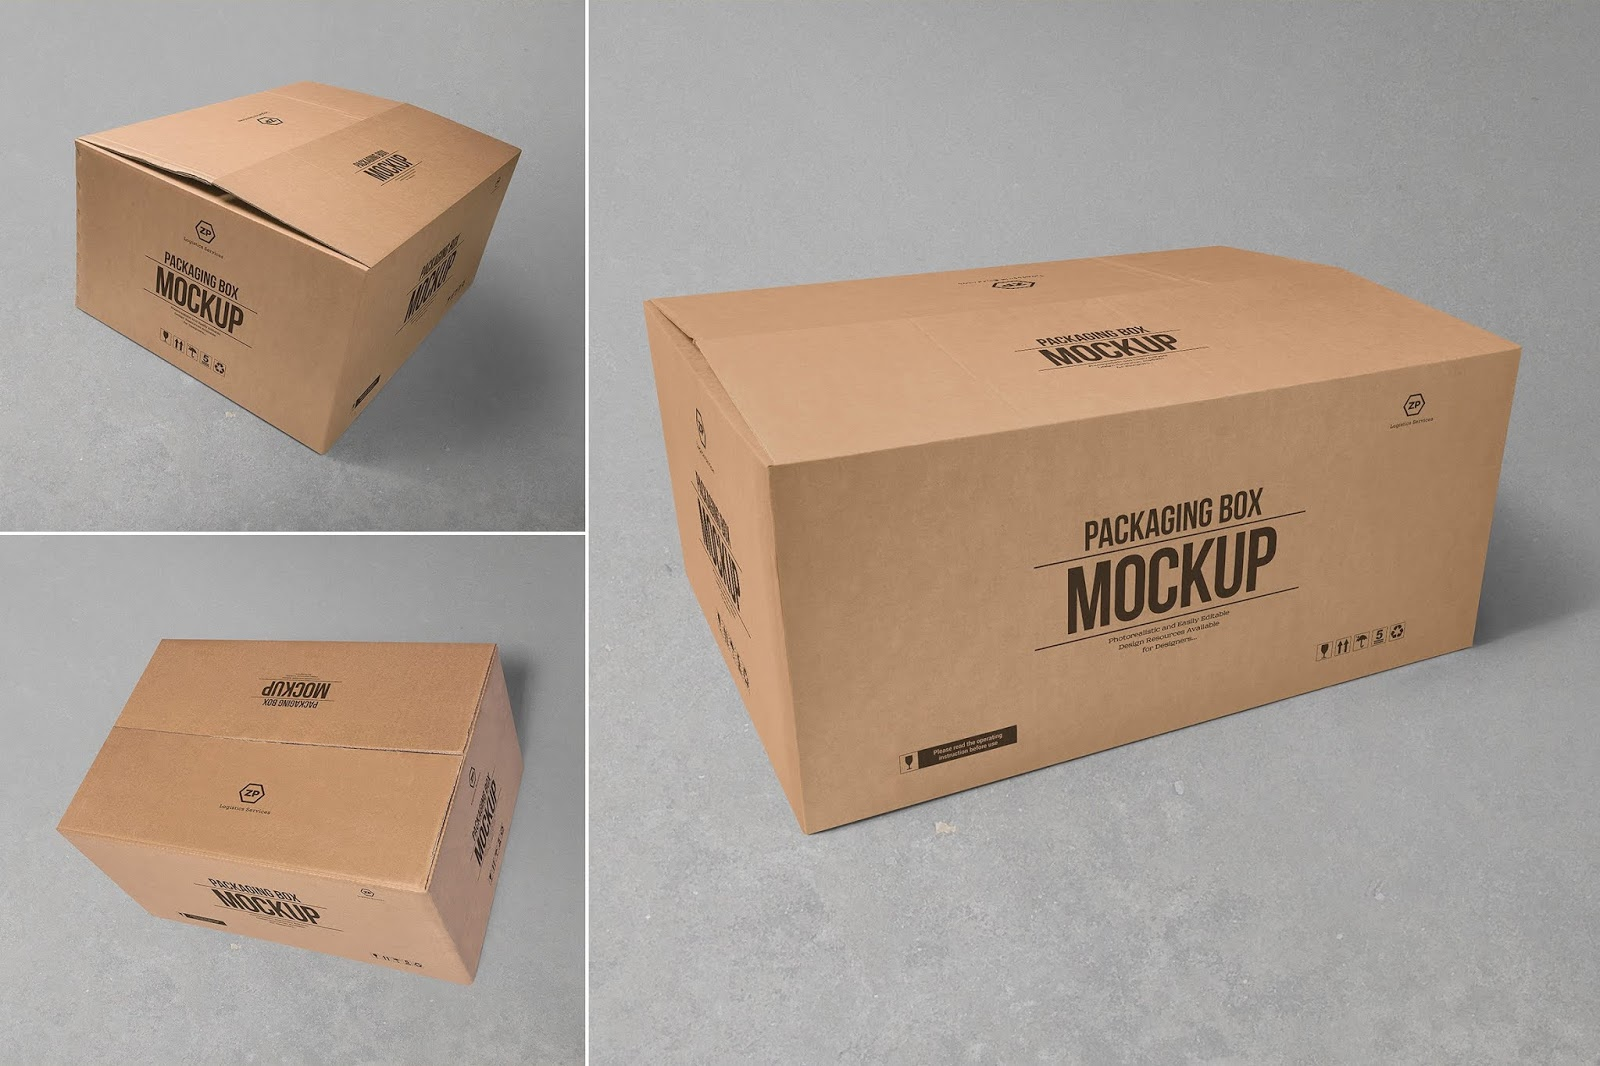 Download 75+ Best Cardboard Box Mockup Templates | Graphic Design ...